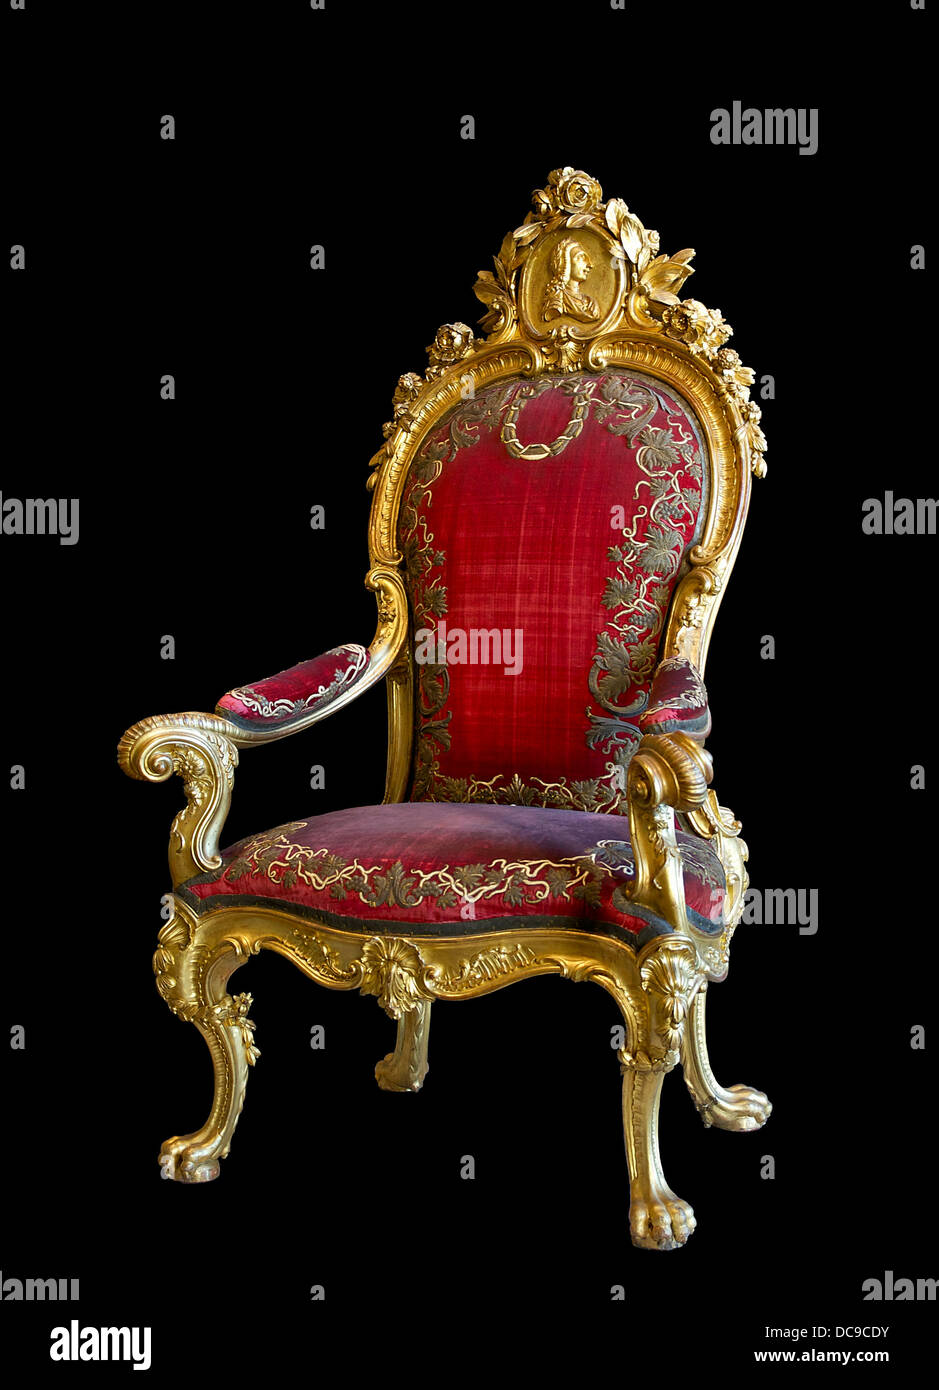 Throne made for King Charles III of Spain, whose profile features in the medallion atop the backrest. Since the - Stock Image